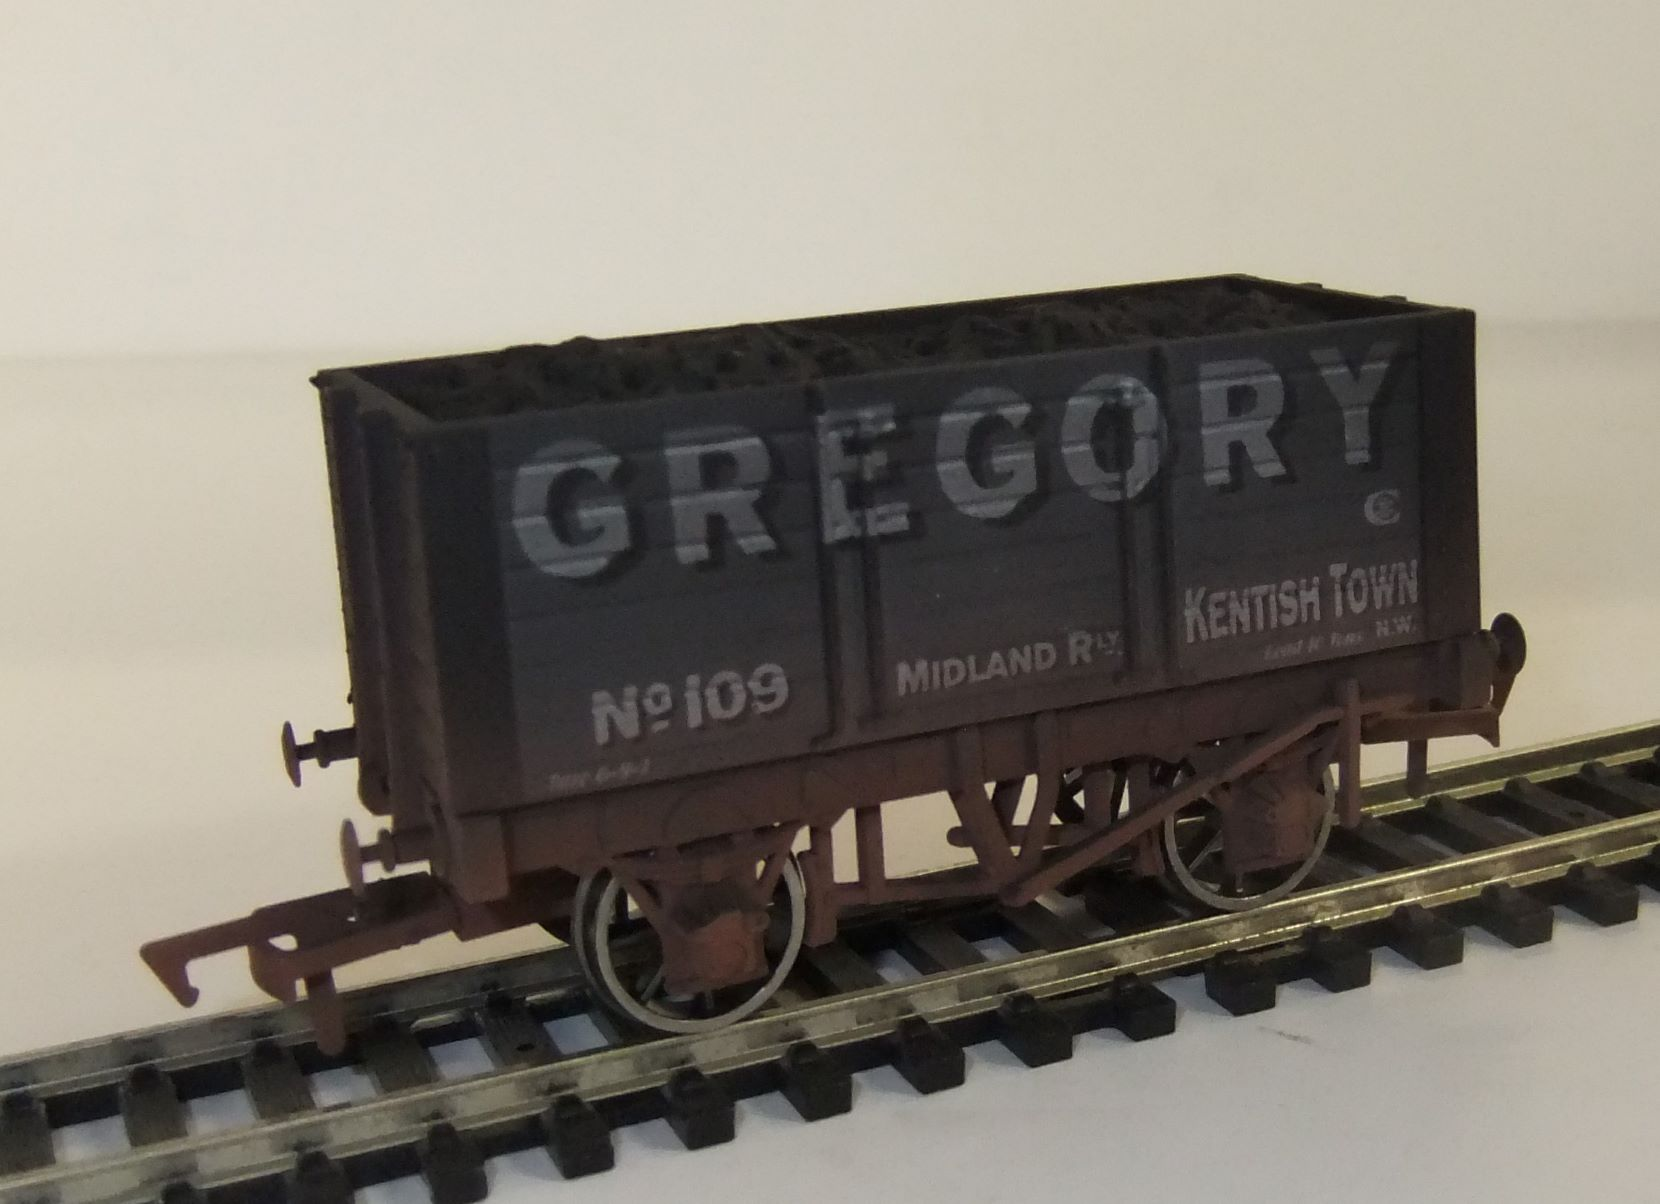 4F-072-010 7 plank wagon Gregory weathered